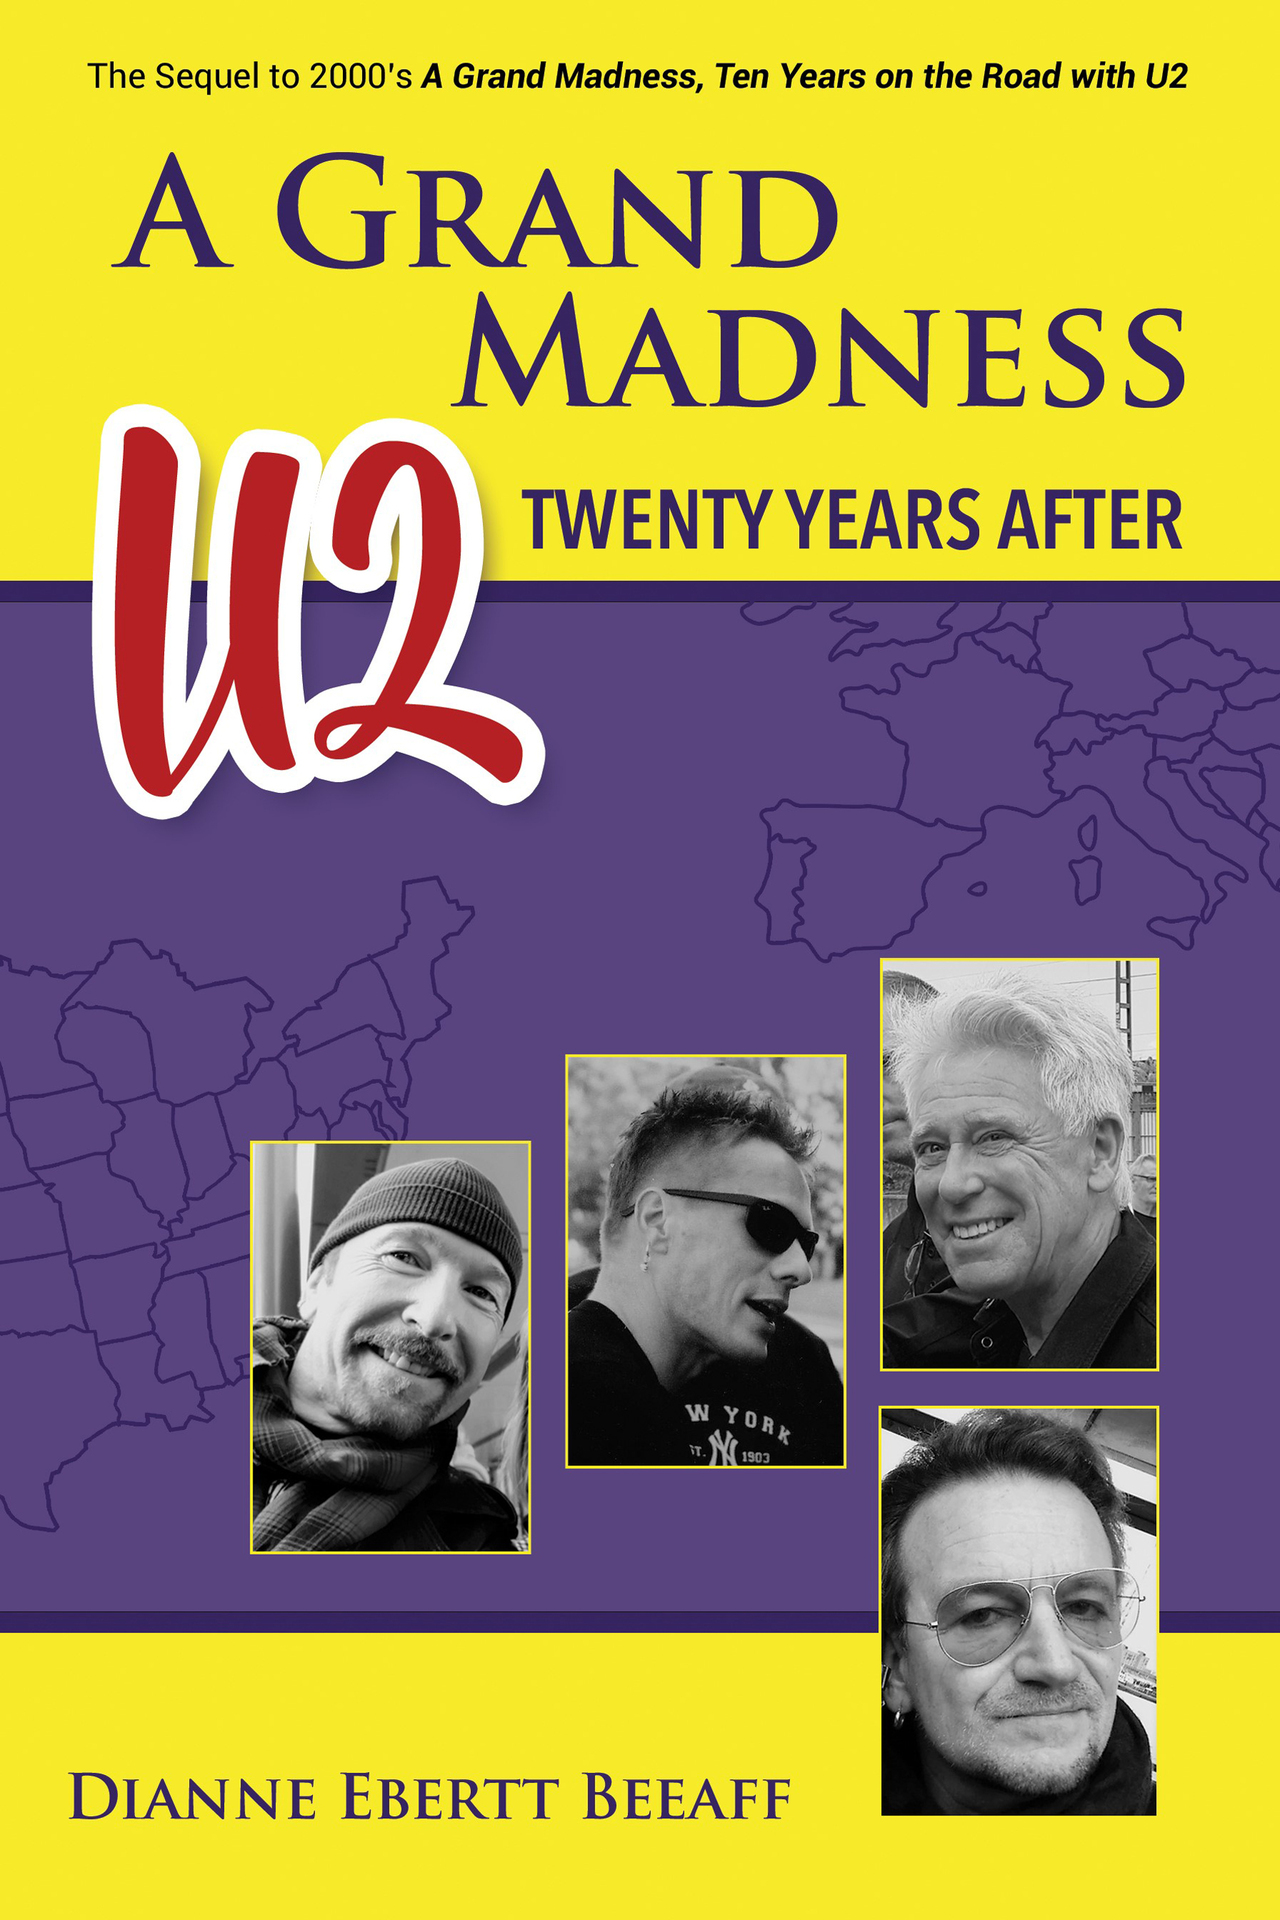 Grand madness 20 years after cover asin 0965618870